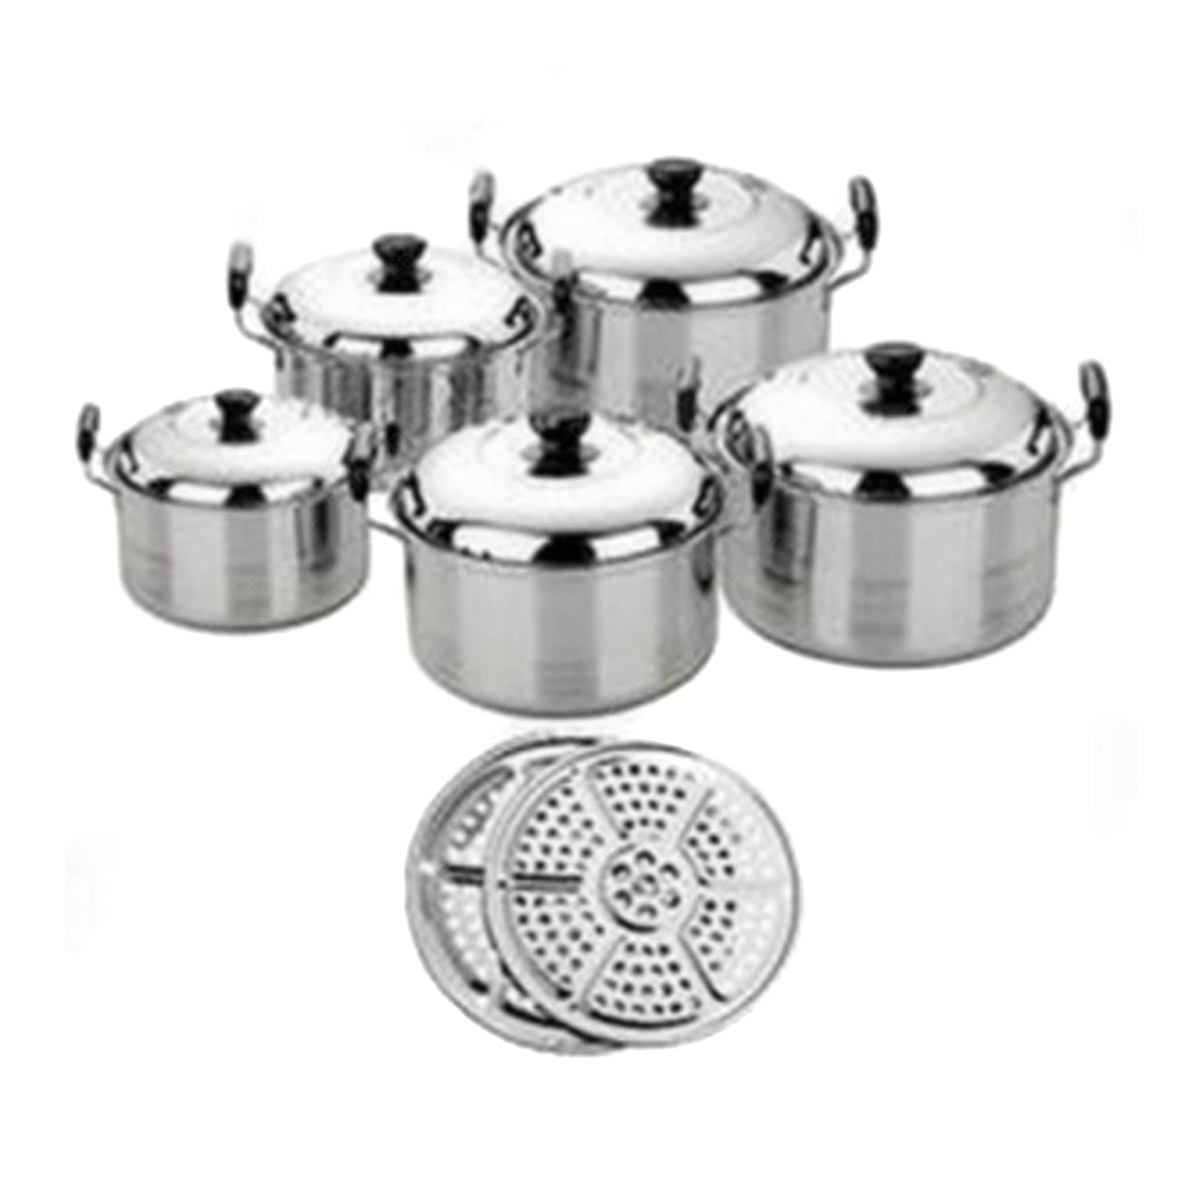 Weston Dutch Oven Set 5 Pcs W1X-DSS5 With Steamer